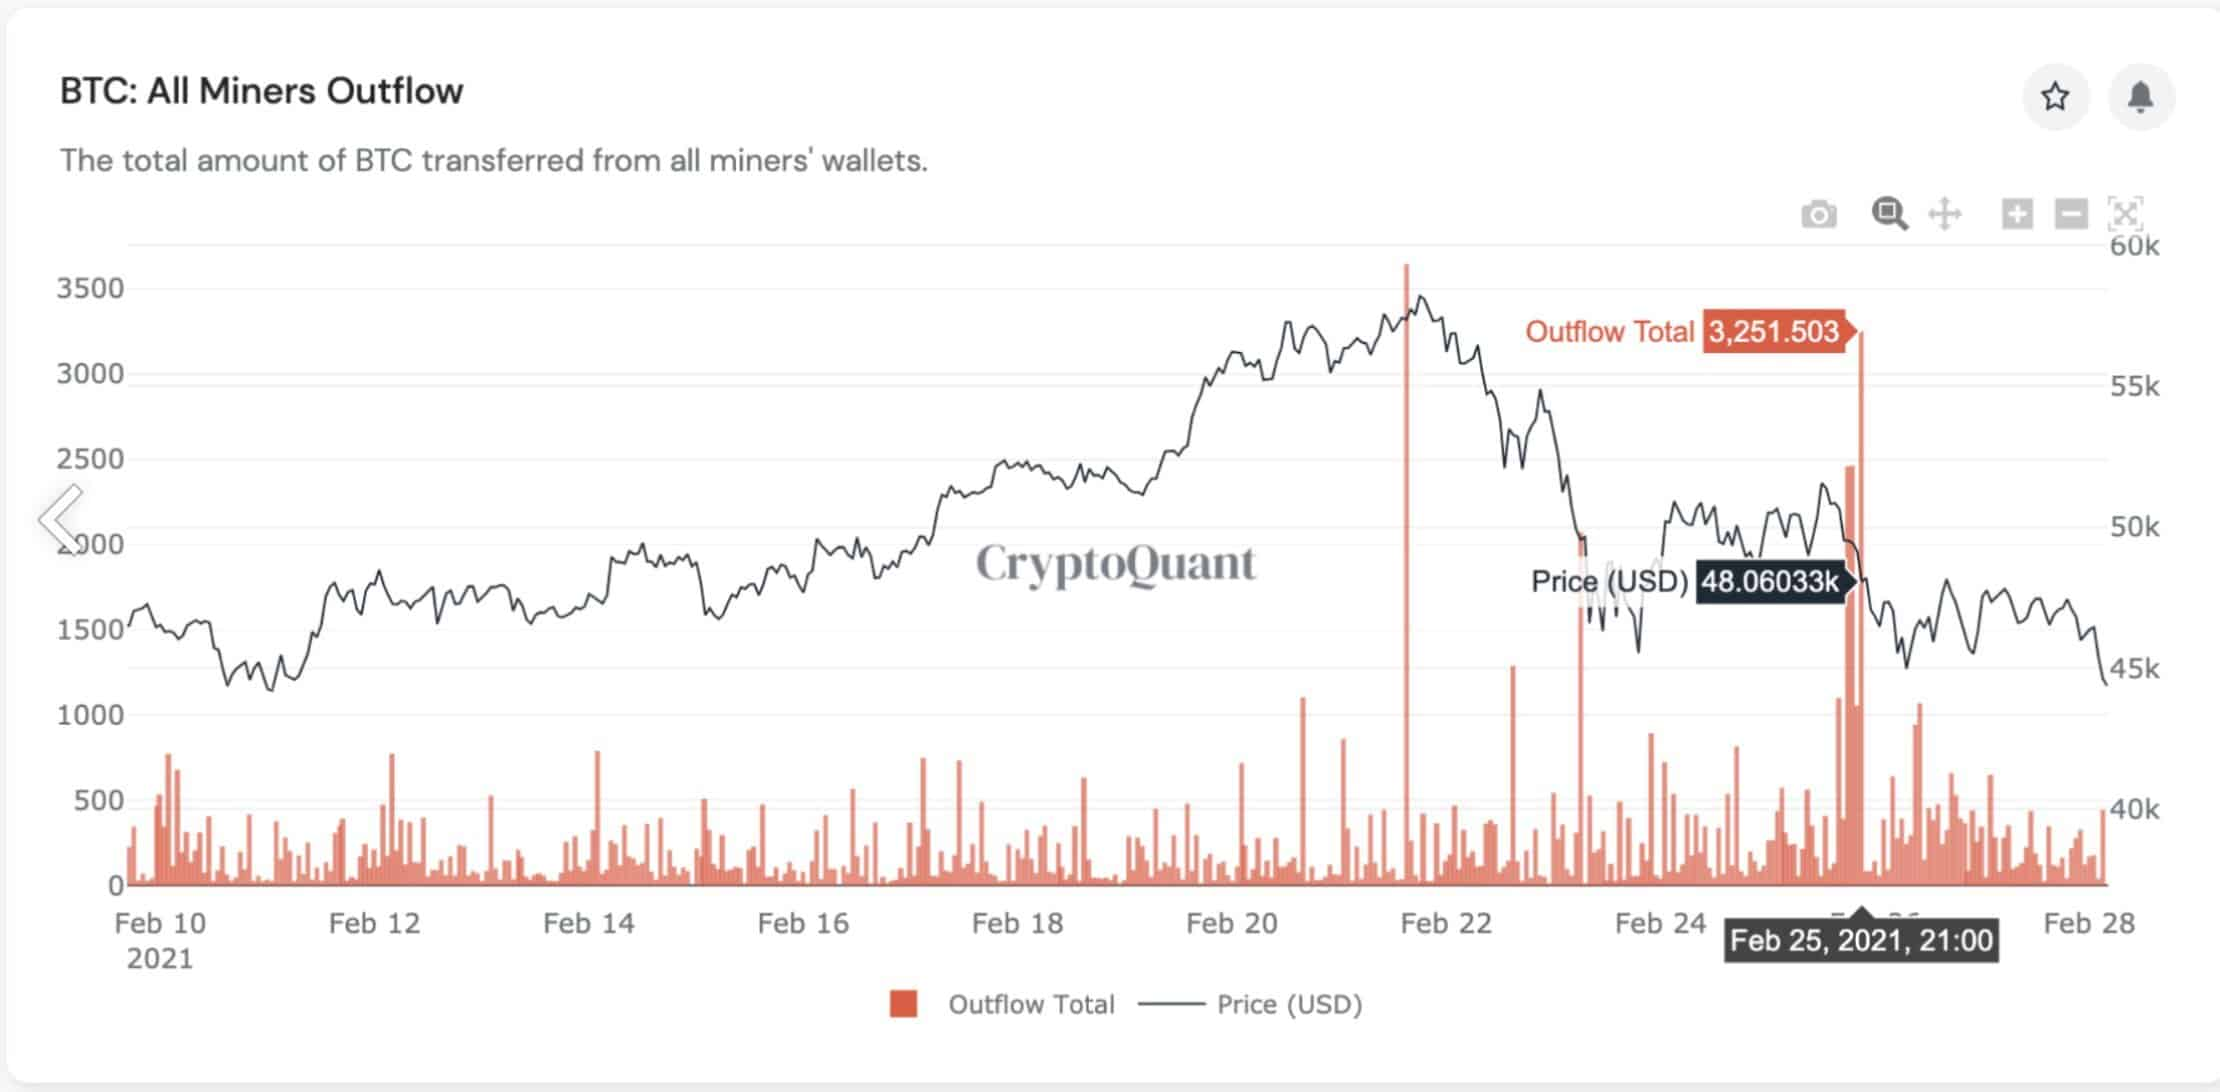 Bitcoin Price Vs. Miners' Behavior. Source: CryptoQuant